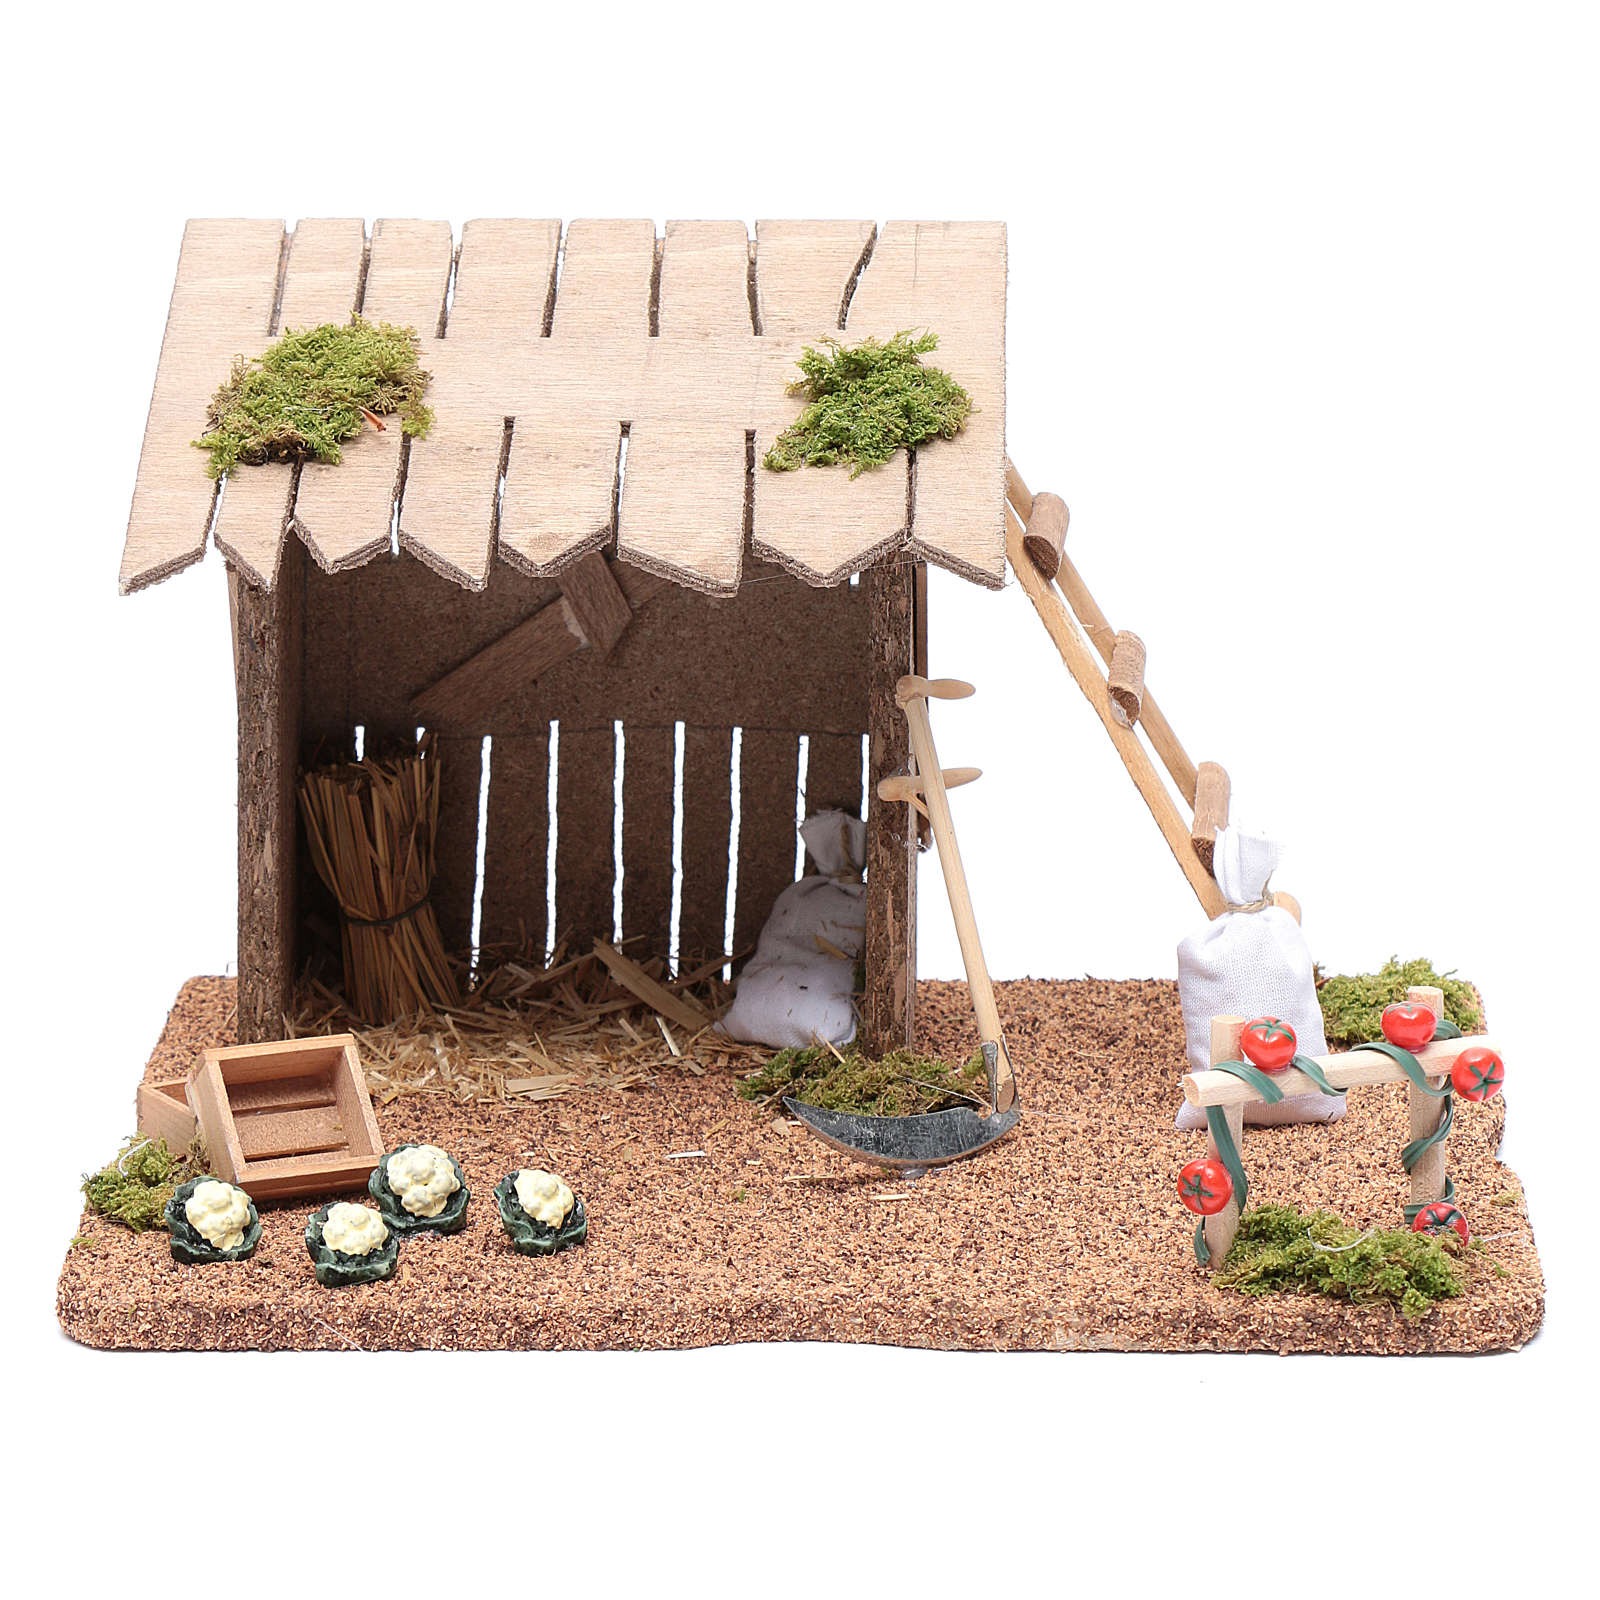 Hut with vegetable garden for nativity scene 20x25x20 cm 4